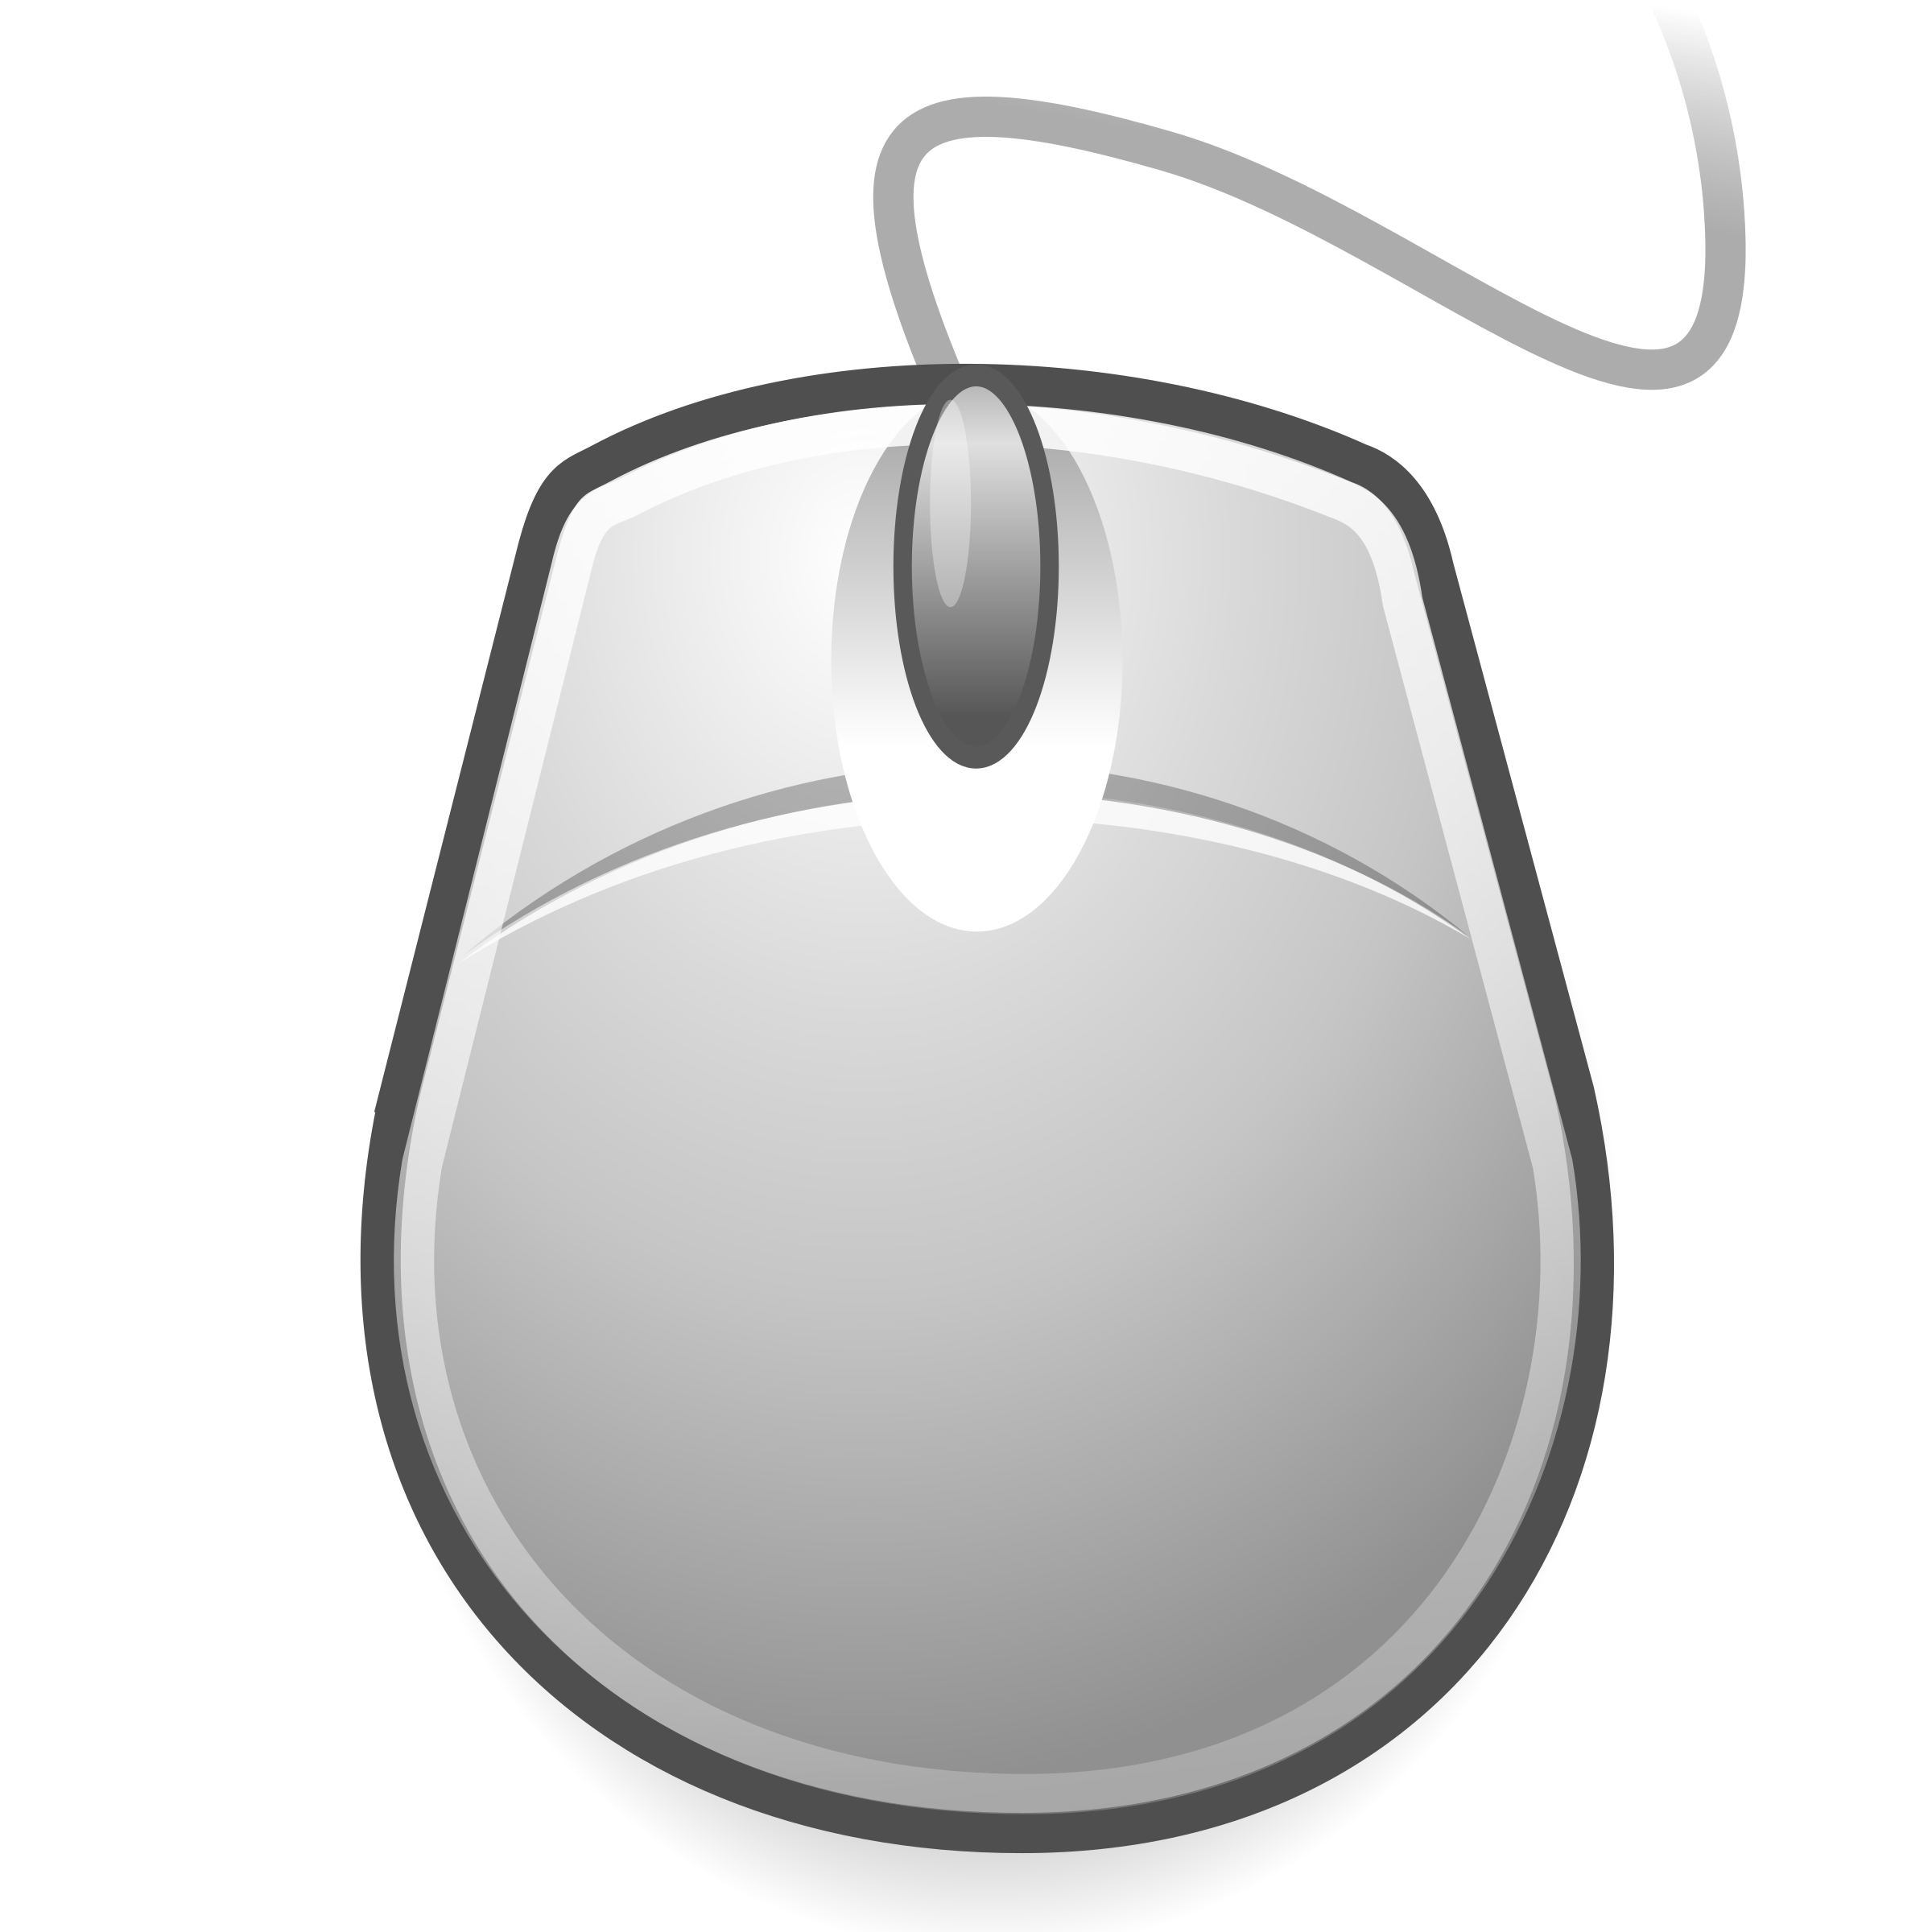 Clip art free icons. Website clipart computer mouse